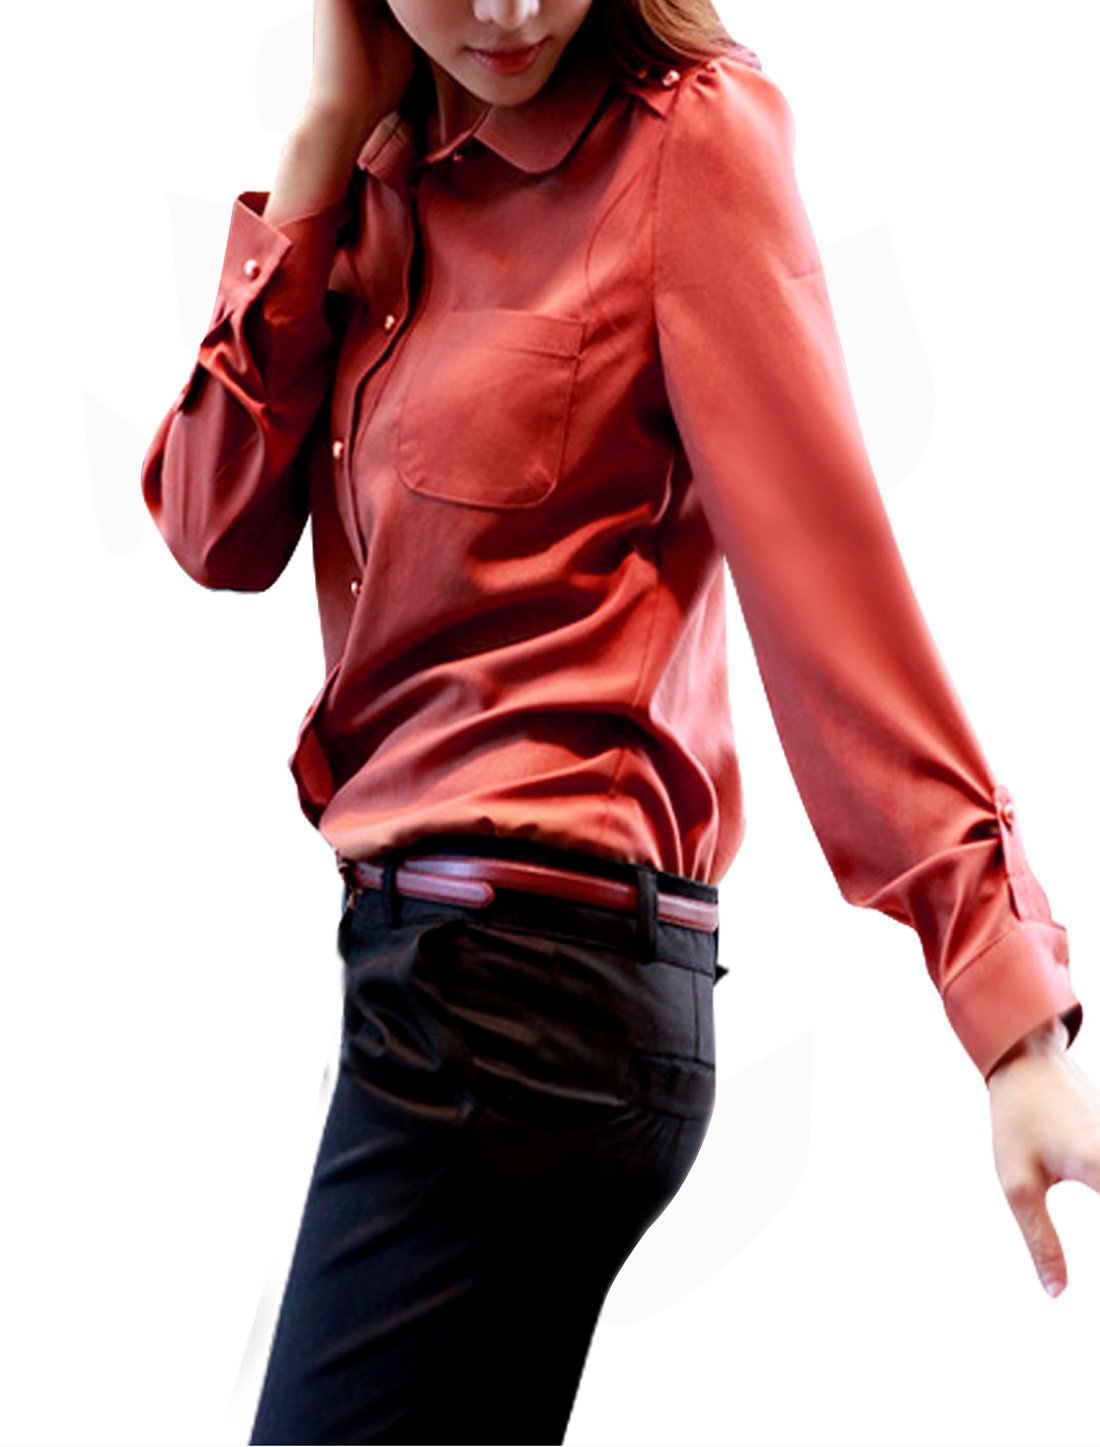 S Ladies Point Collar Button Down Style Long Sleeve Fashion Shirt Rust